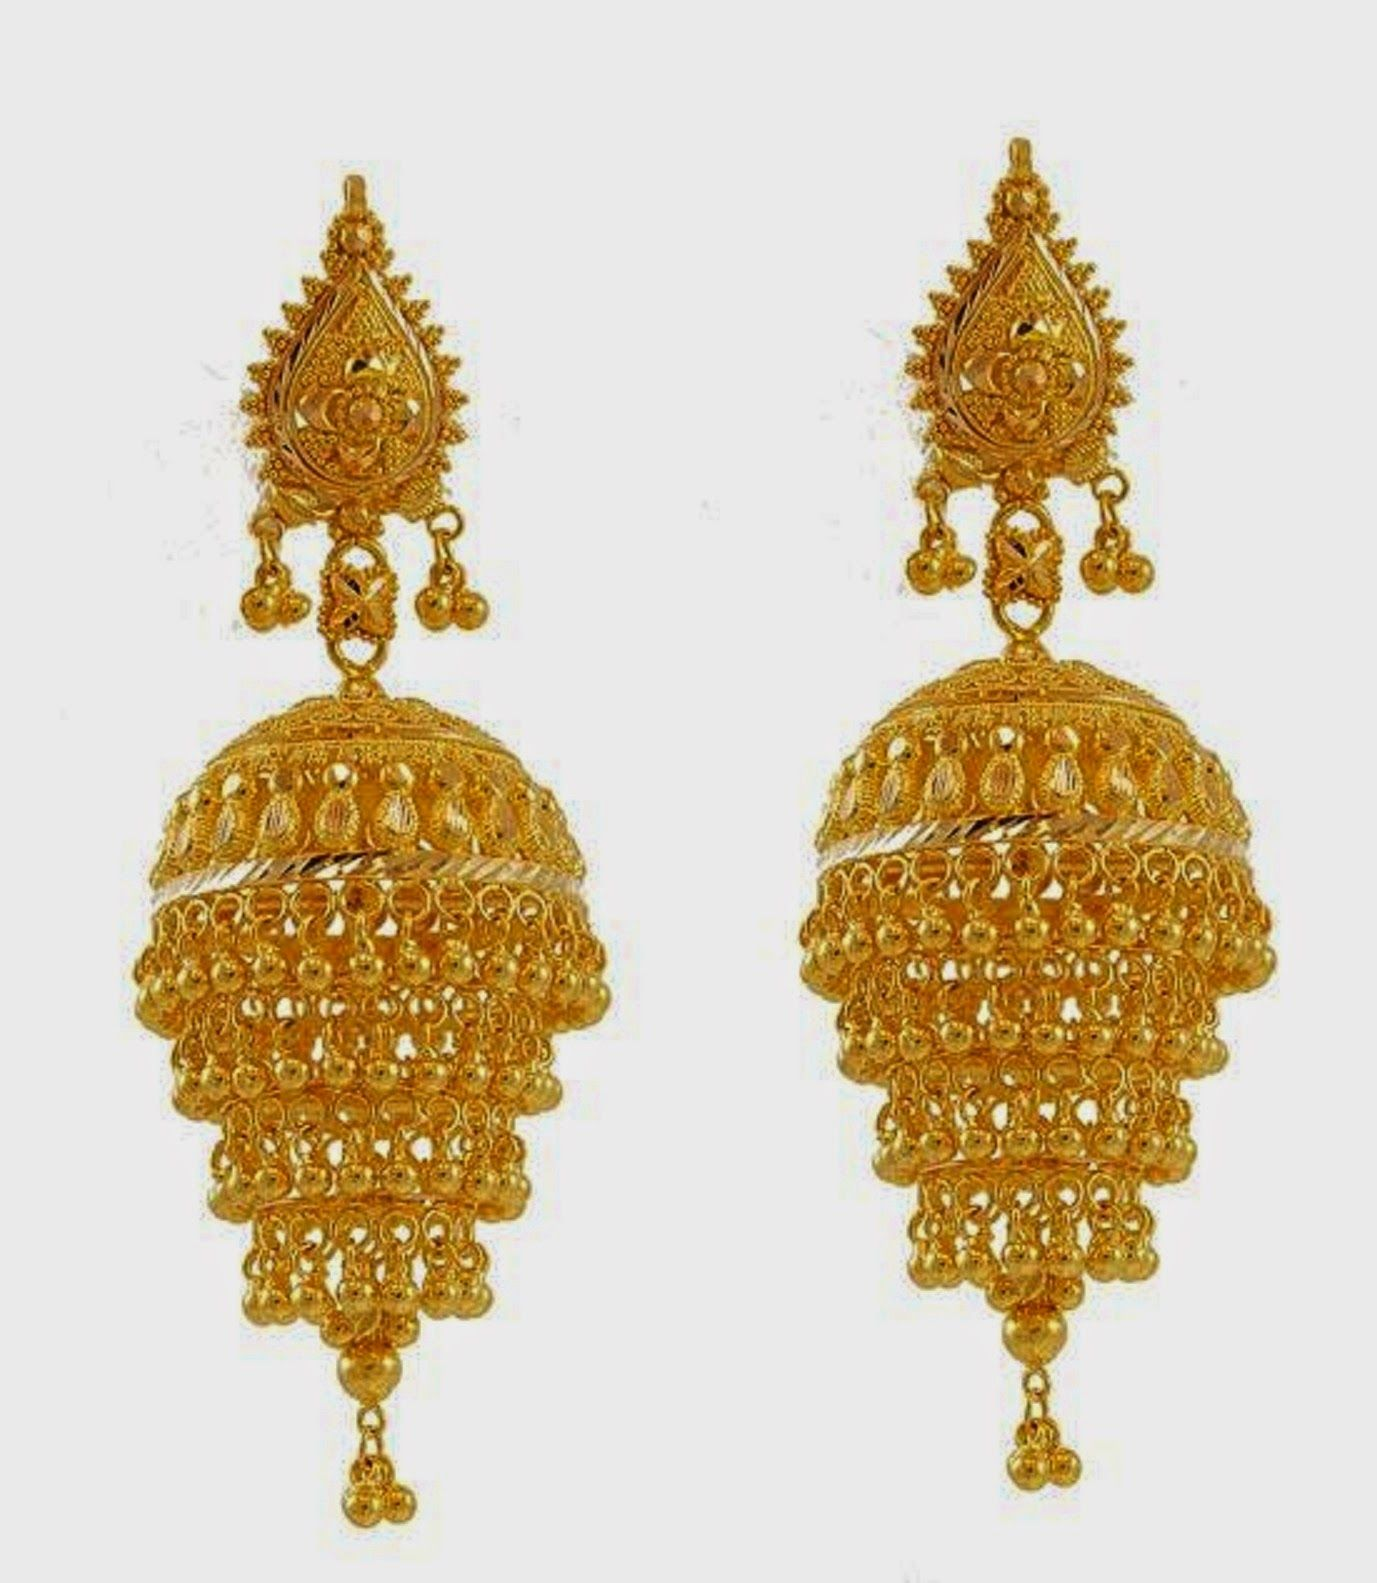 Gold Jhumka Earring Designs Jpg 1377 1583